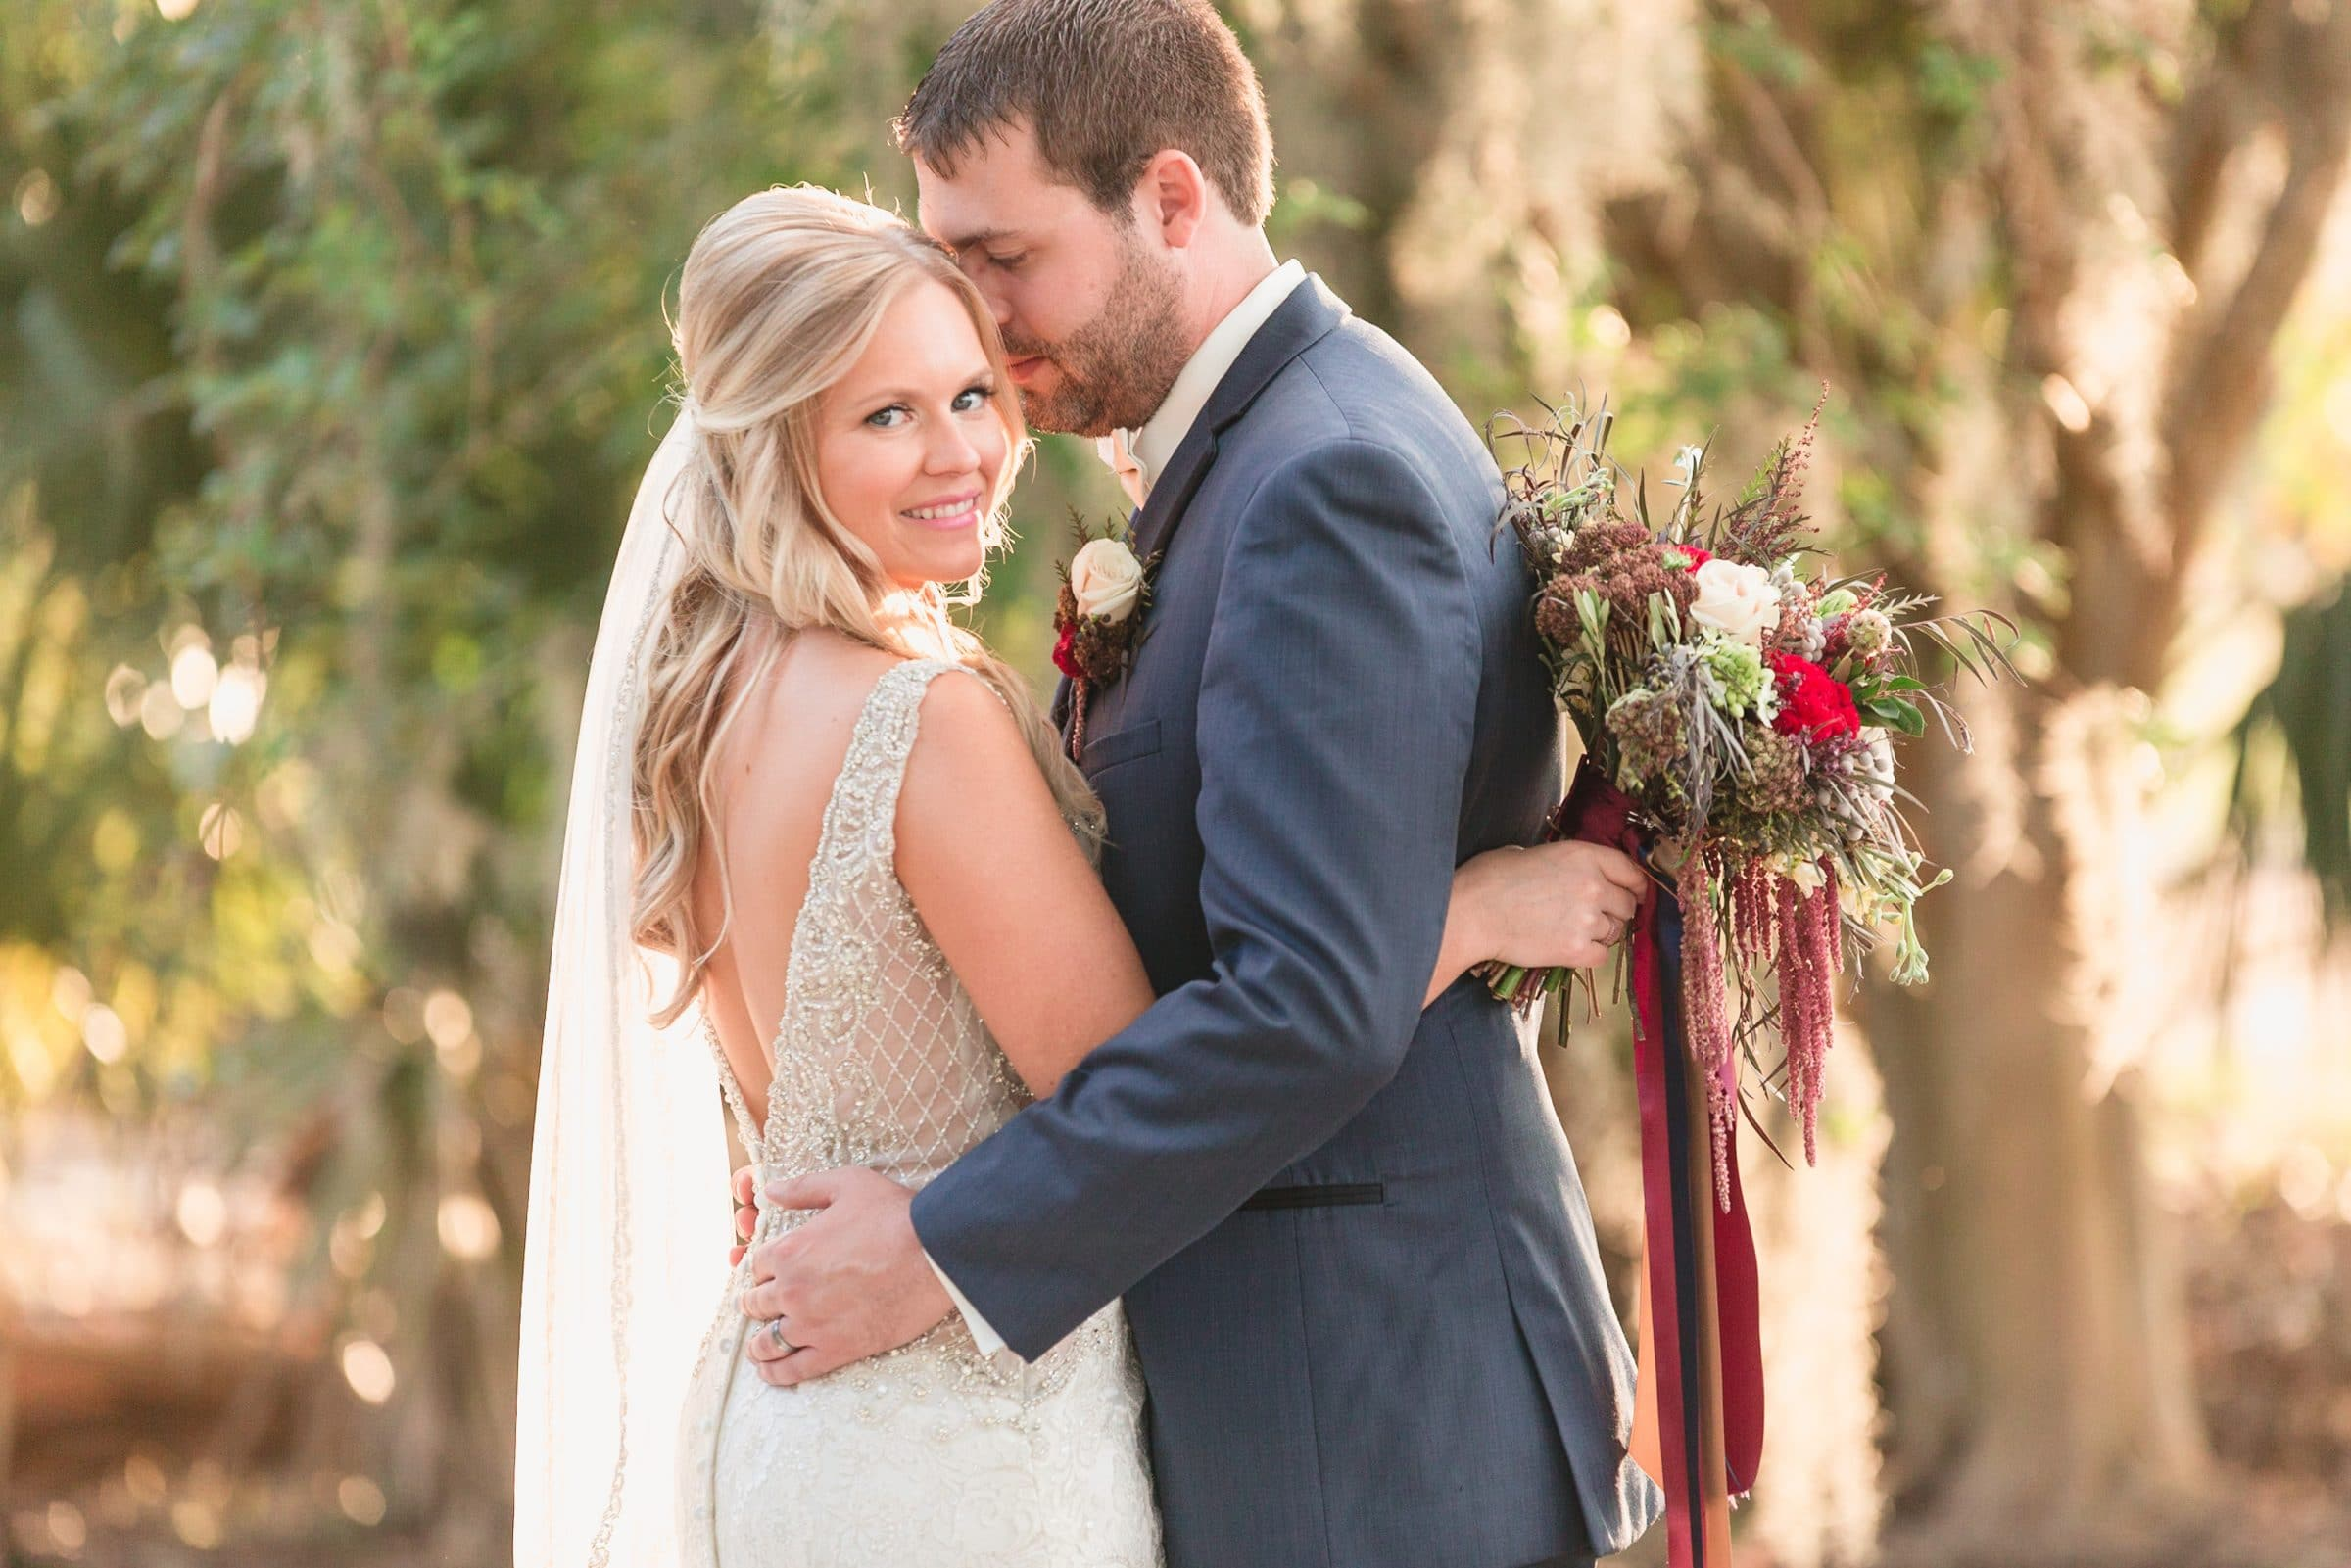 Bride and Groom in Trees holding Harvest Hues Wedding Bouquet